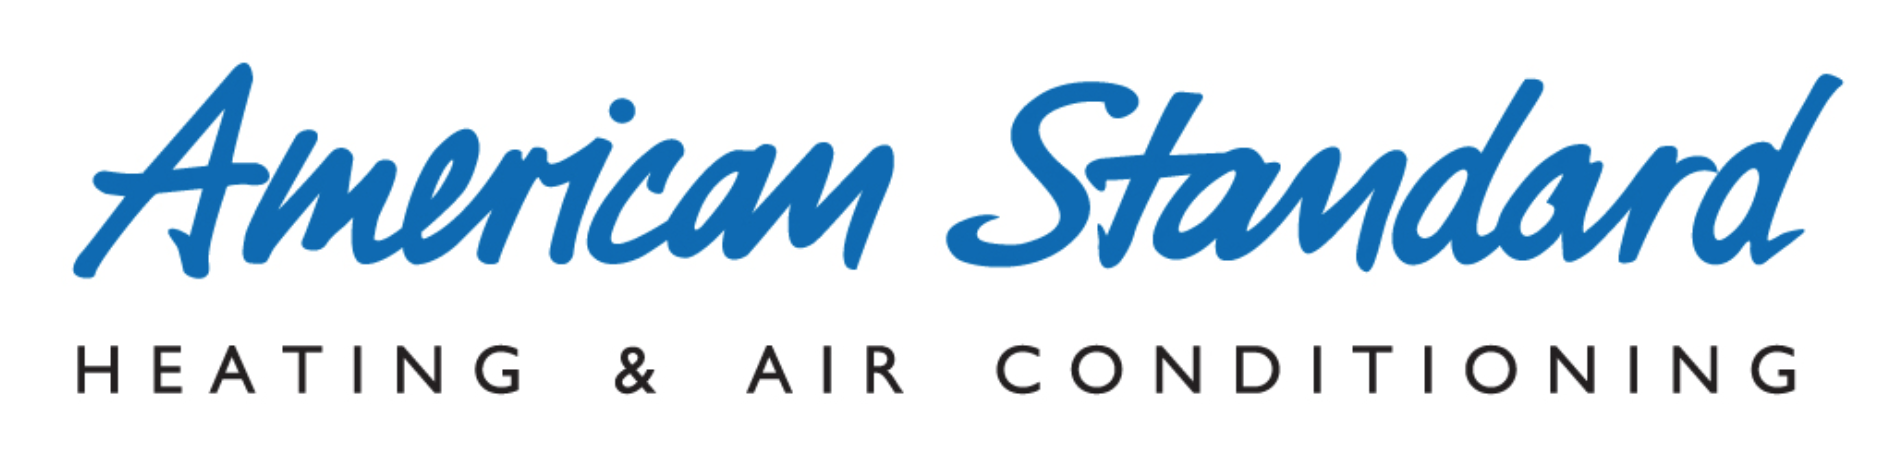 American Standard | Fanning Services, Inc.